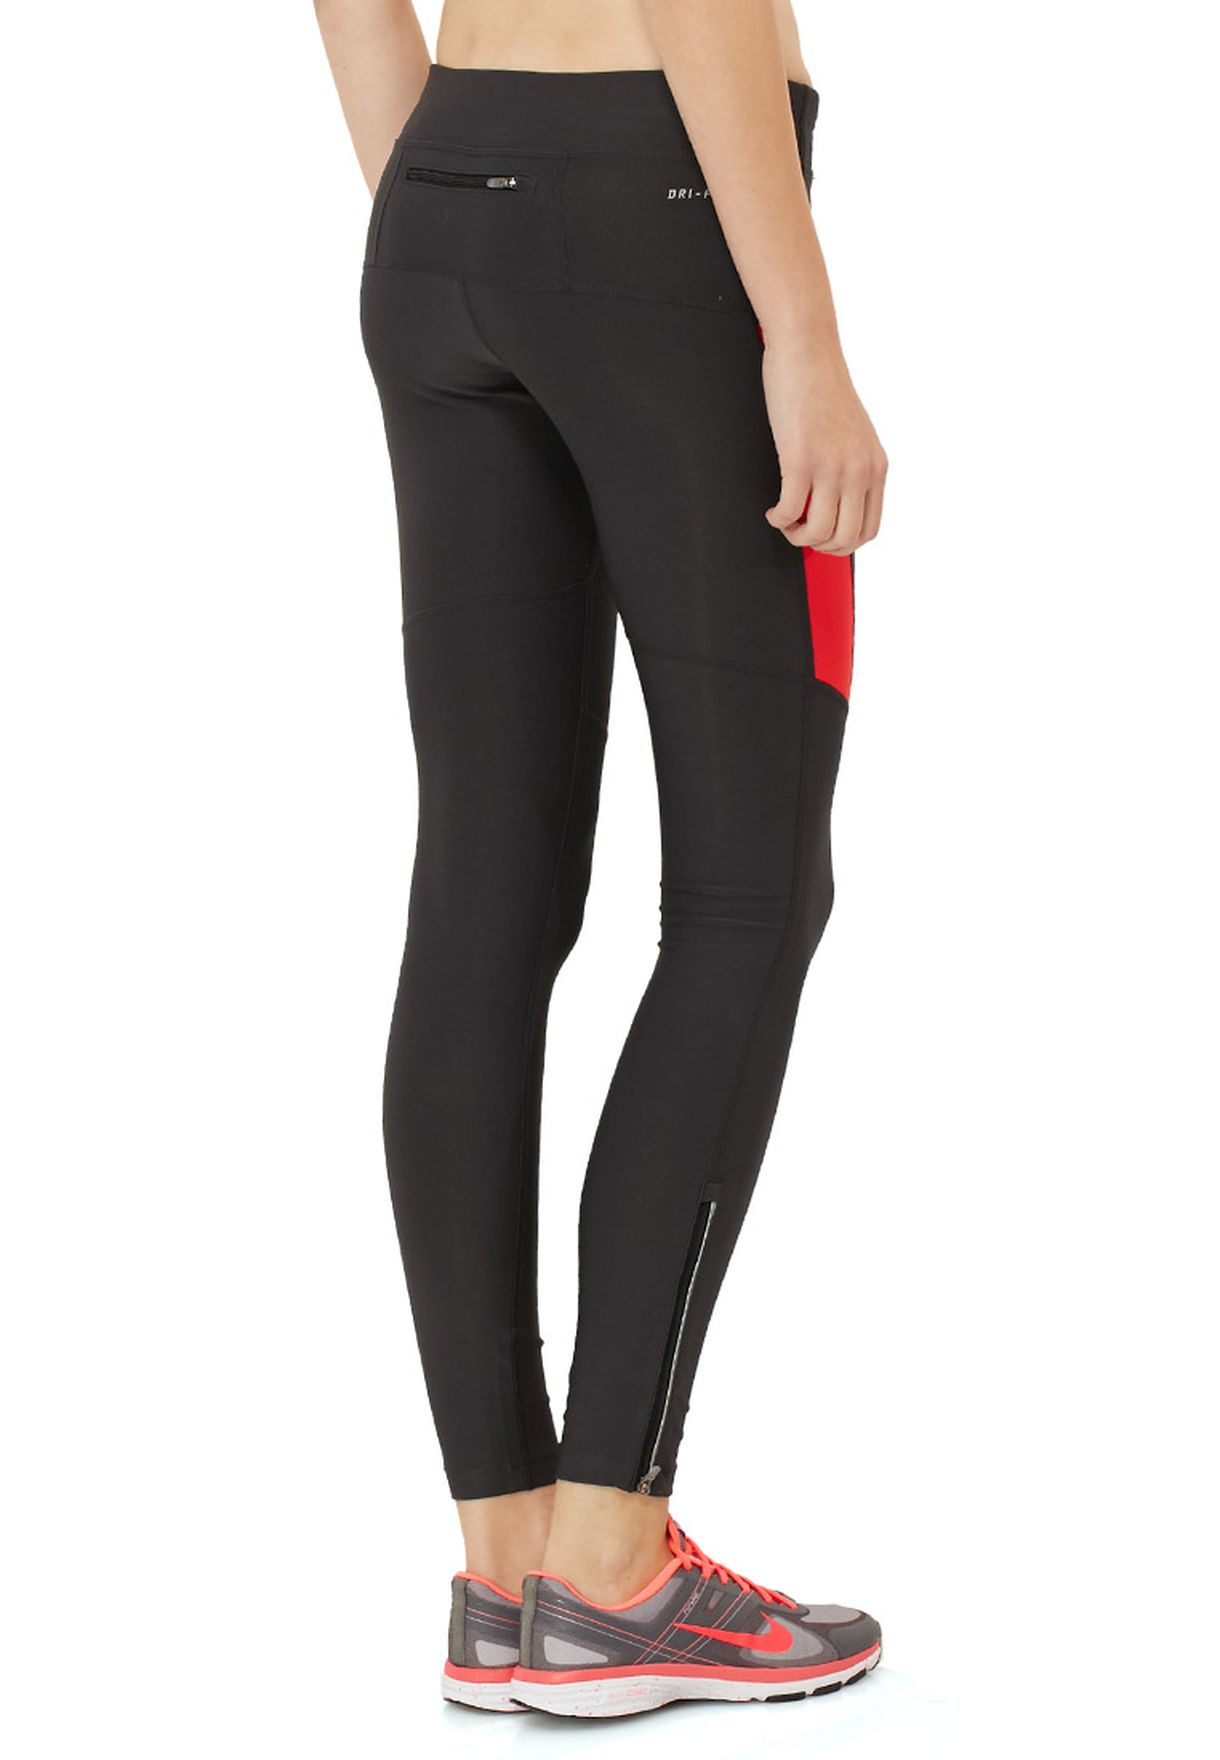 c19b01192441 Shop Nike black Filament Tights 519843-259 for Women in Kuwait ...